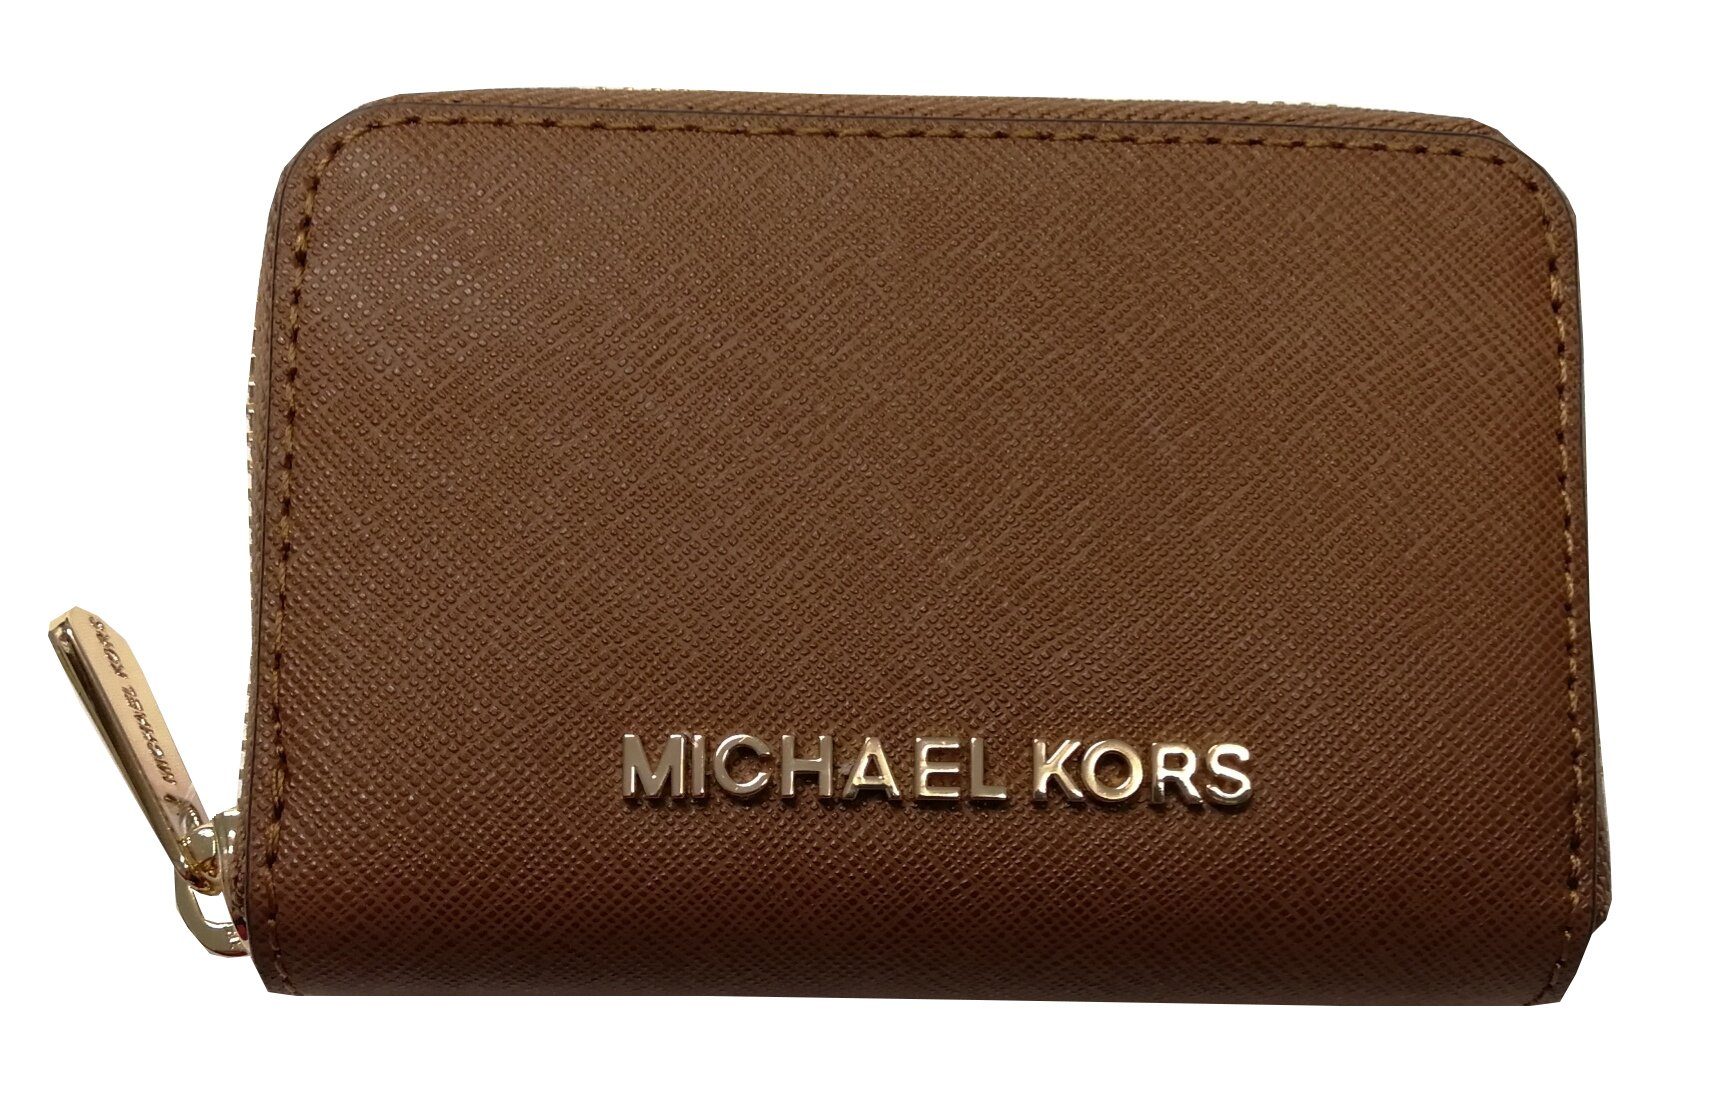 Michael Kors Jet Set Travel Zip Around Coin Case Leather Wallet Luggage by Michael Kors (Image #1)